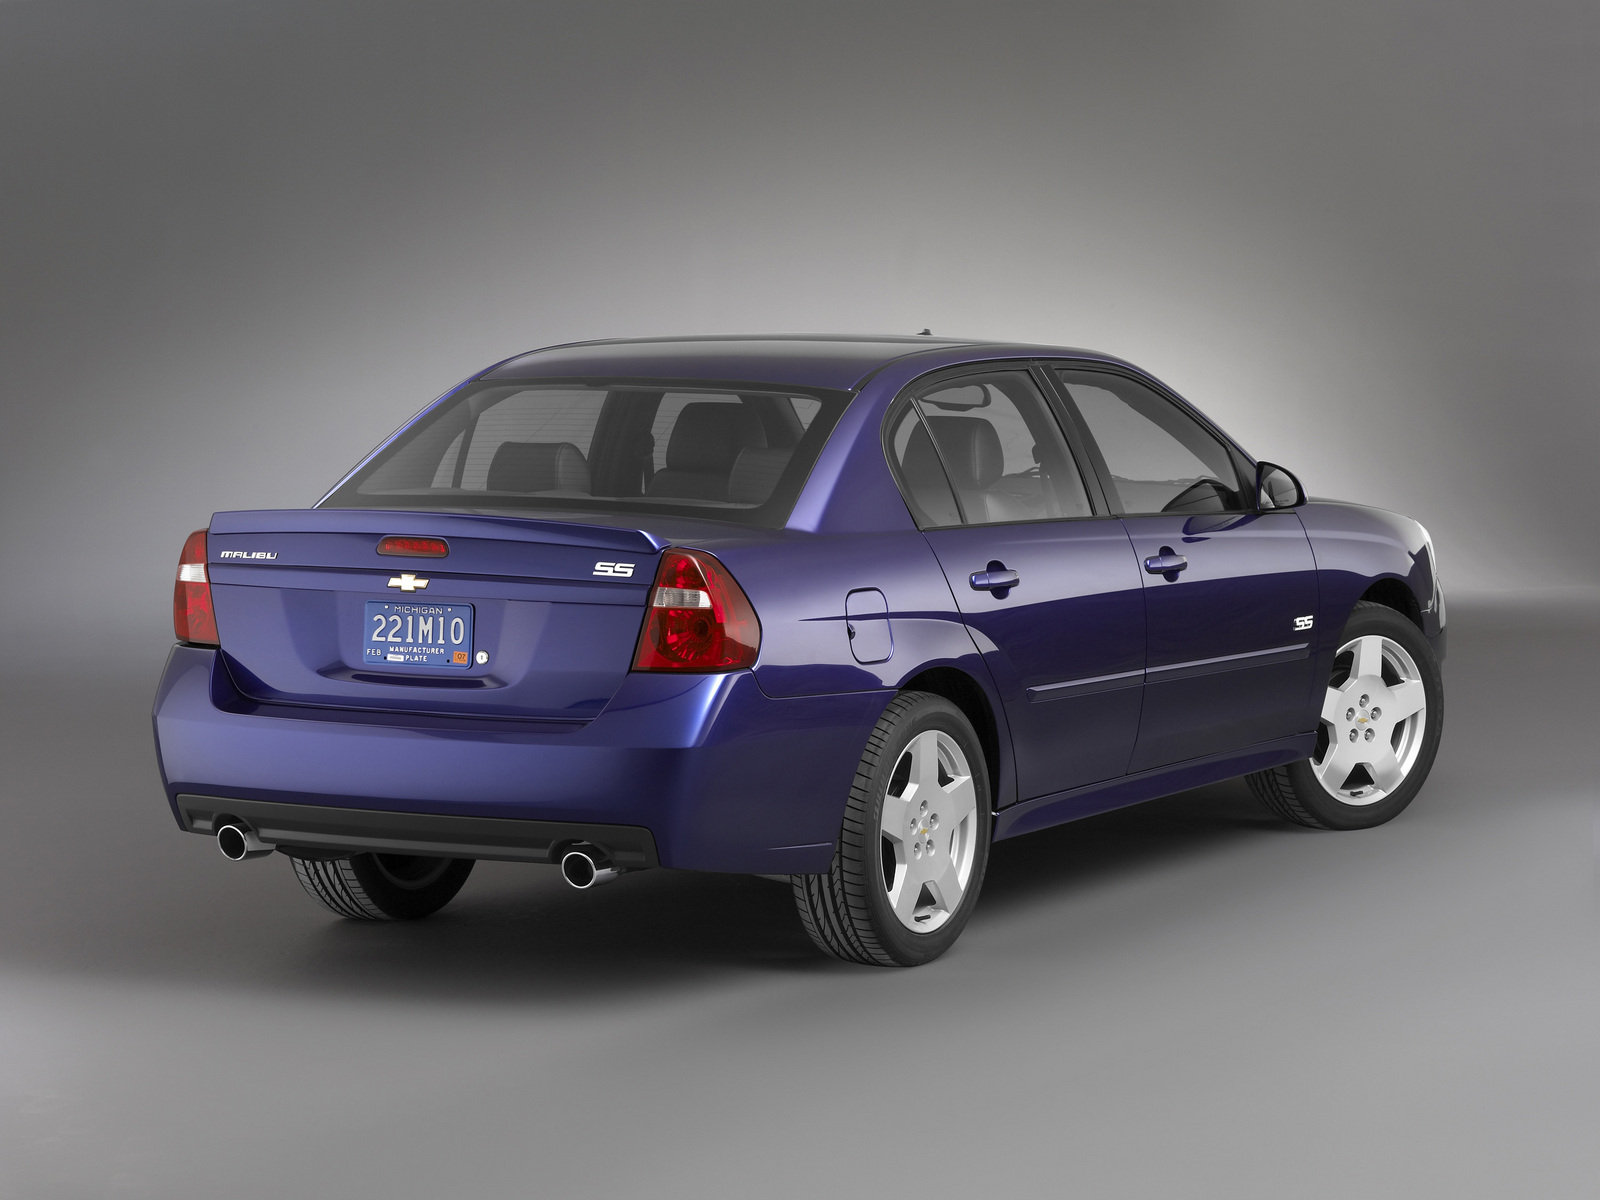 2007 chevrolet malibu ss picture 90309 car review top speed. Cars Review. Best American Auto & Cars Review